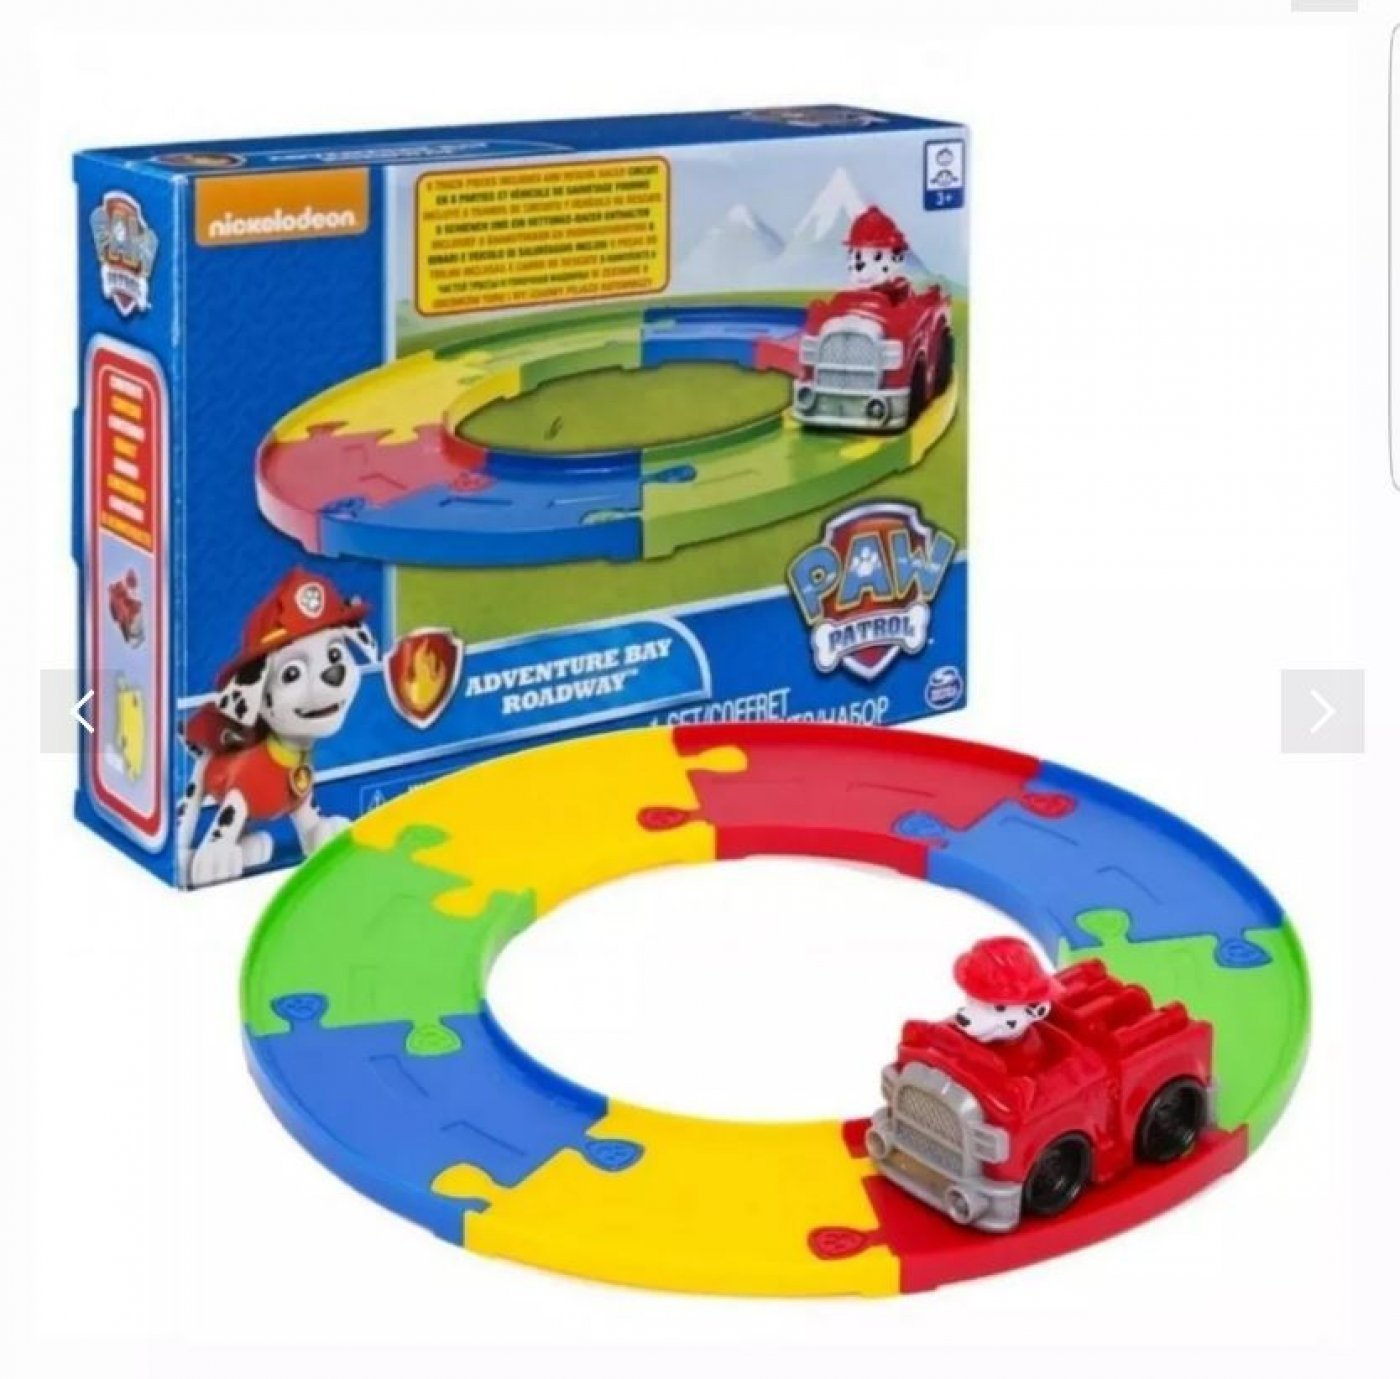 Paw Patrol Vehiculo Marshal Set Vias Adventure Bay Roadway